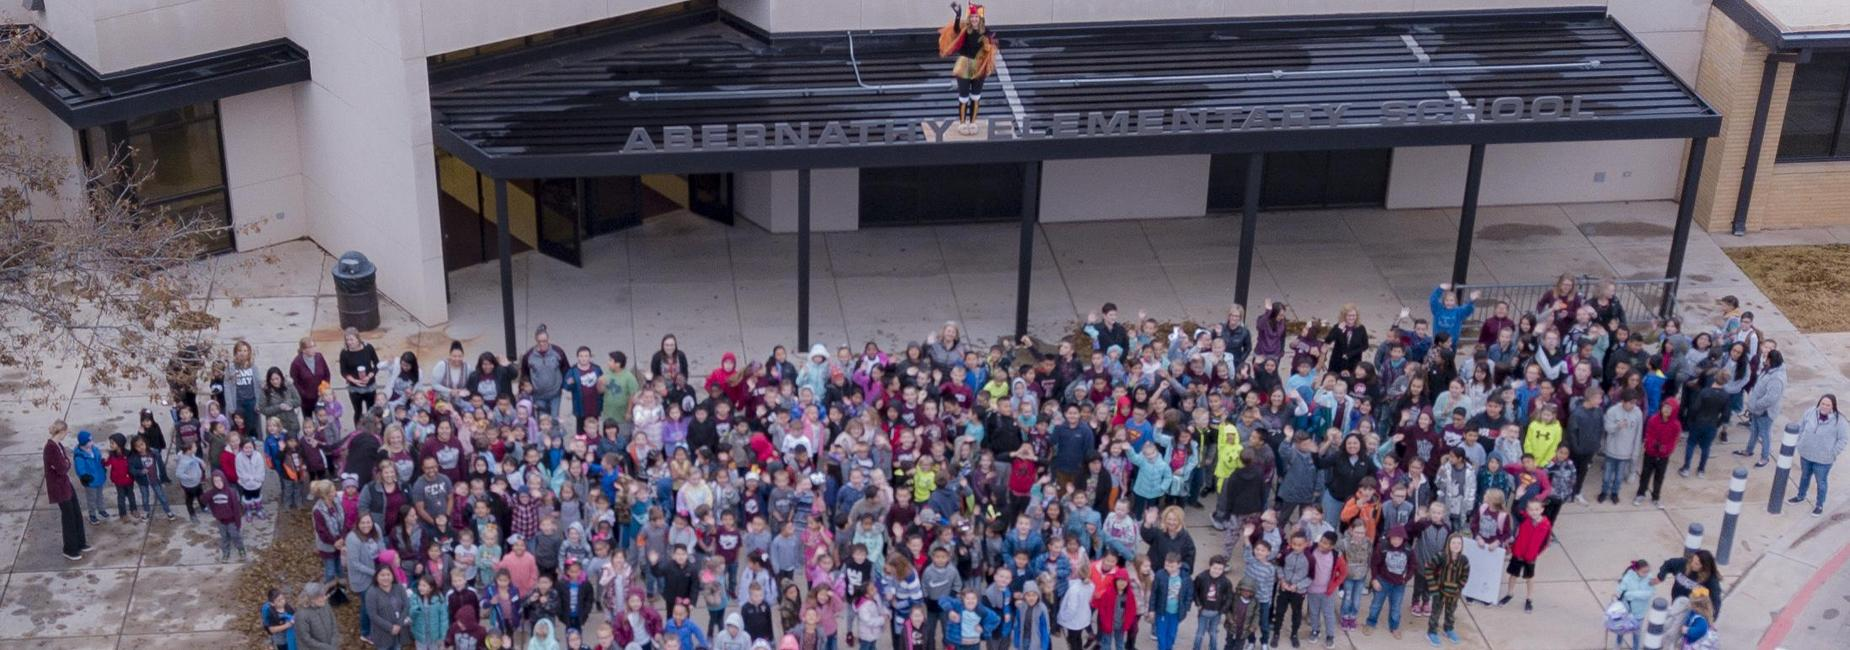 Elementary students pose with principal dressed as turkey atop the building